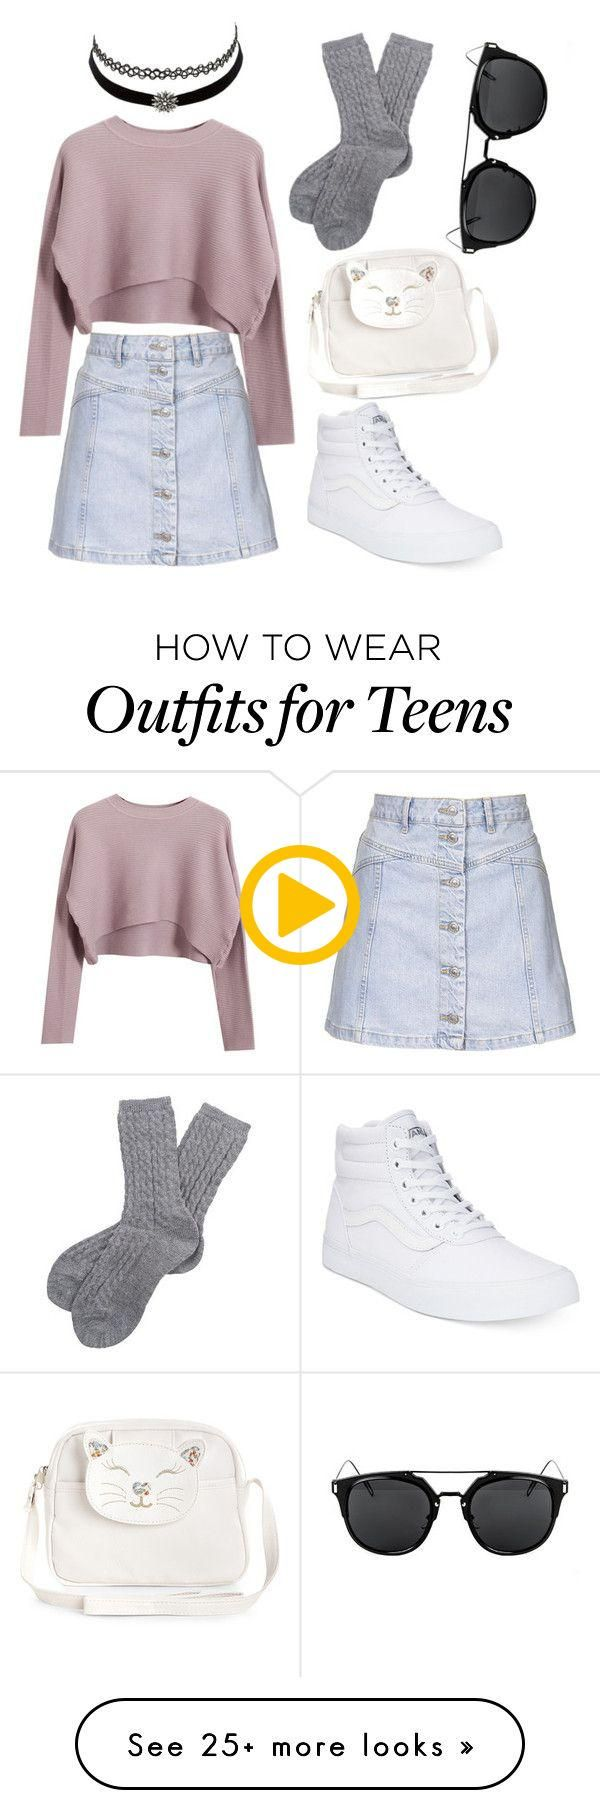 """Teens spirit"" by scatterbrain69 on Polyvore featuring Topshop, Charlotte Russe"